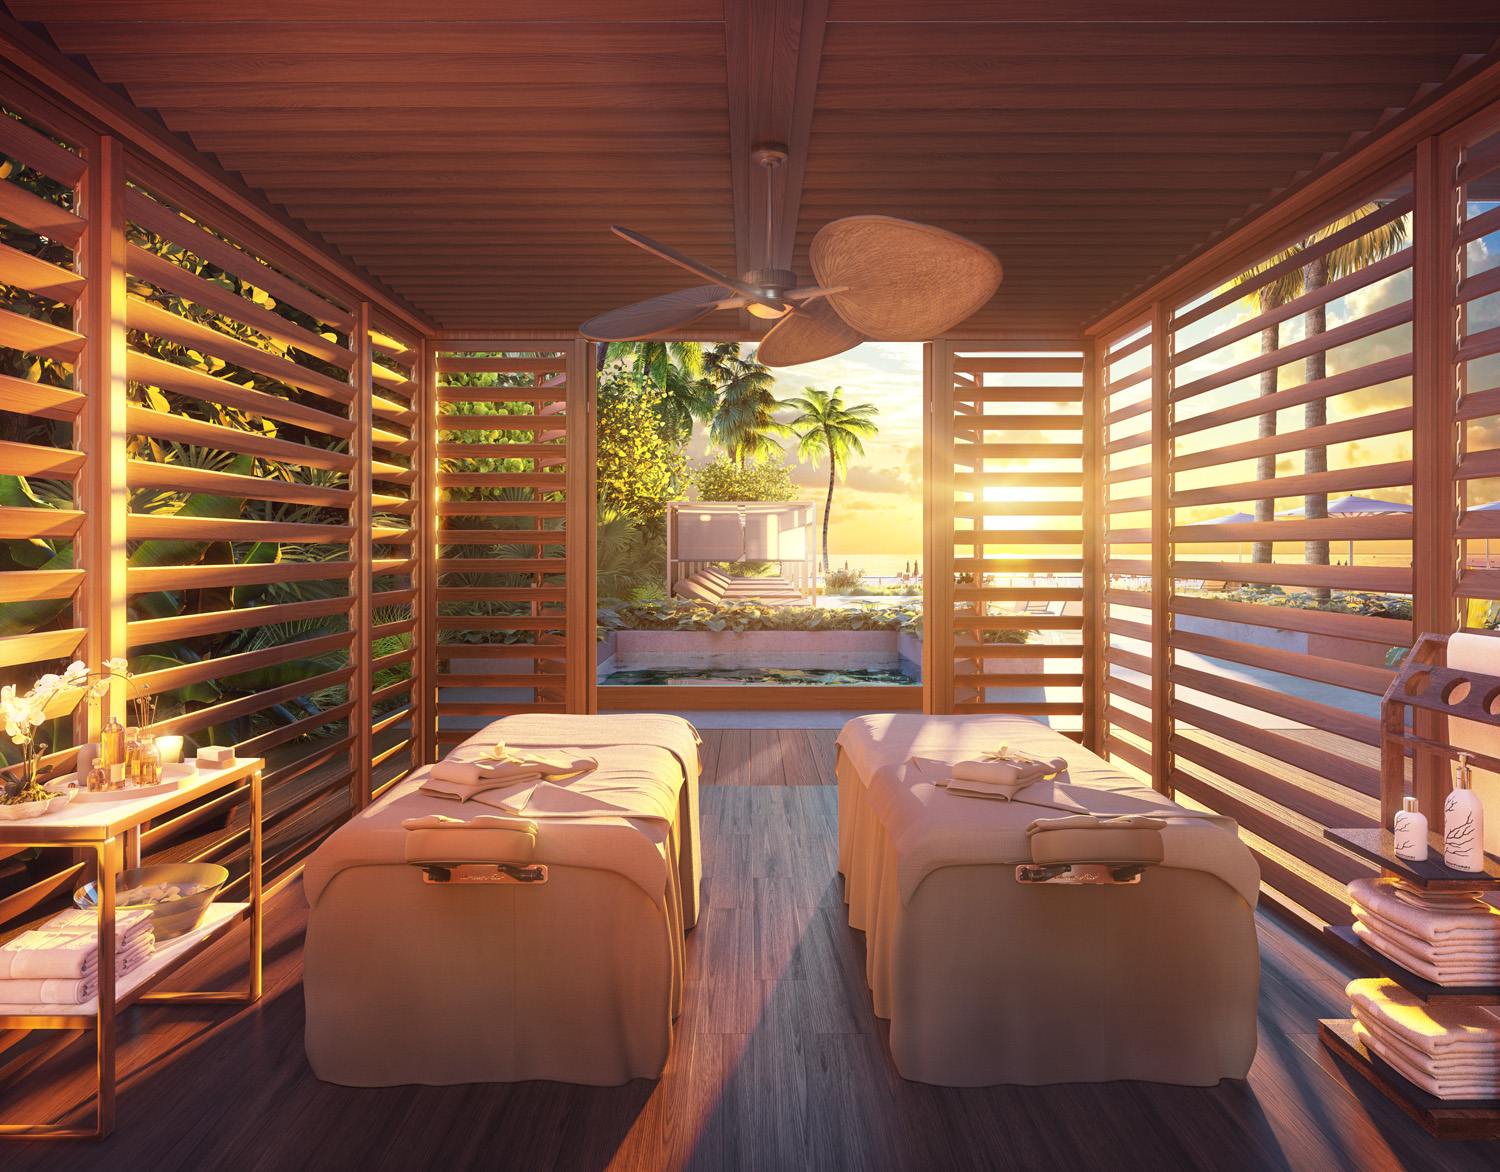 Interior view of 57 Ocean residence outdoor spa area in Miami. Has two massage tables and open wooden walls.